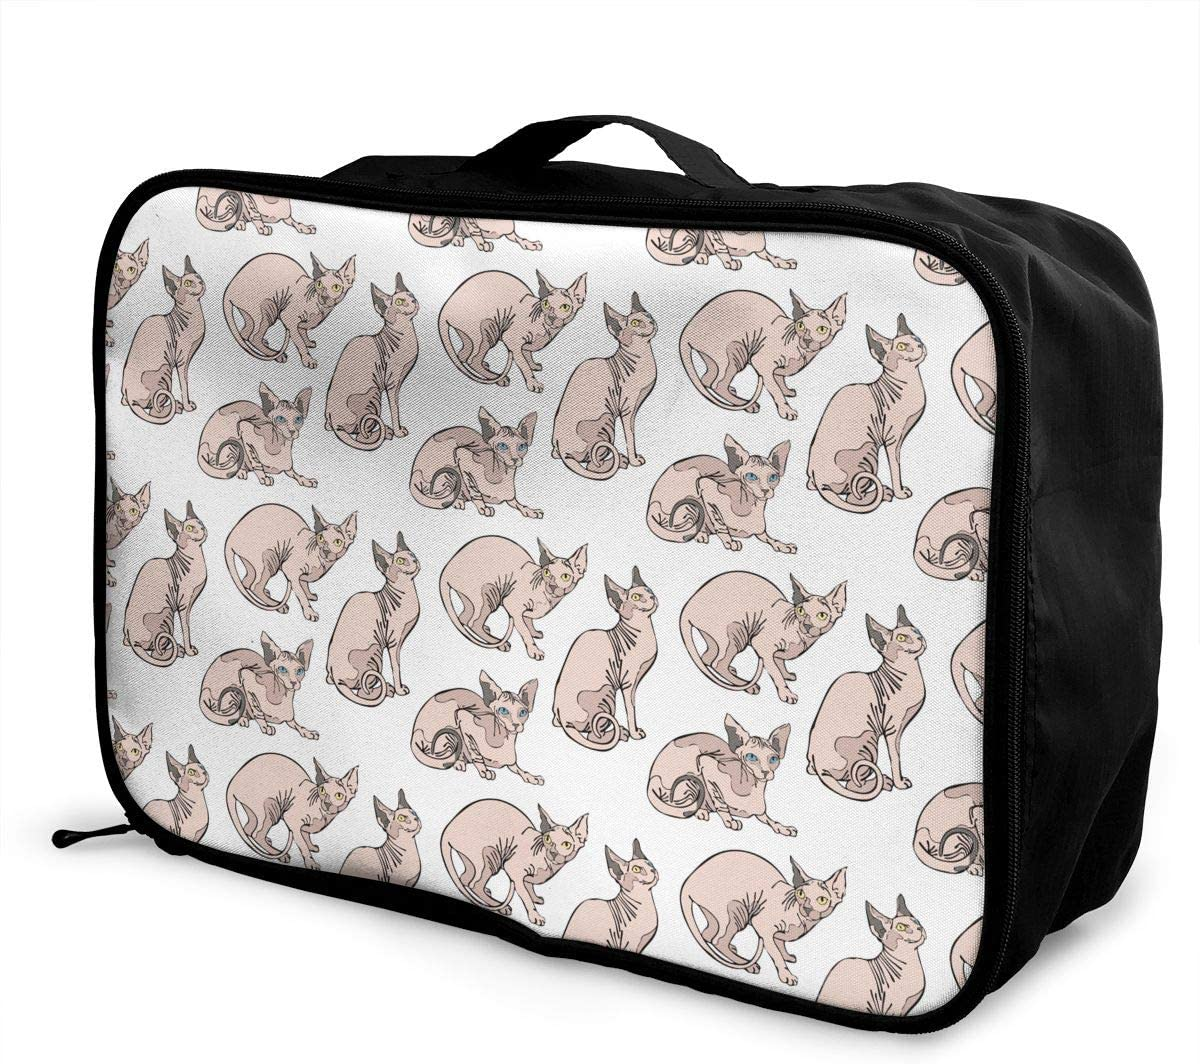 Naked Cats Sphynx Cats Pattern Travel Carry-on Luggage Weekender Bag Overnight Tote Flight Duffel In Trolley Handle